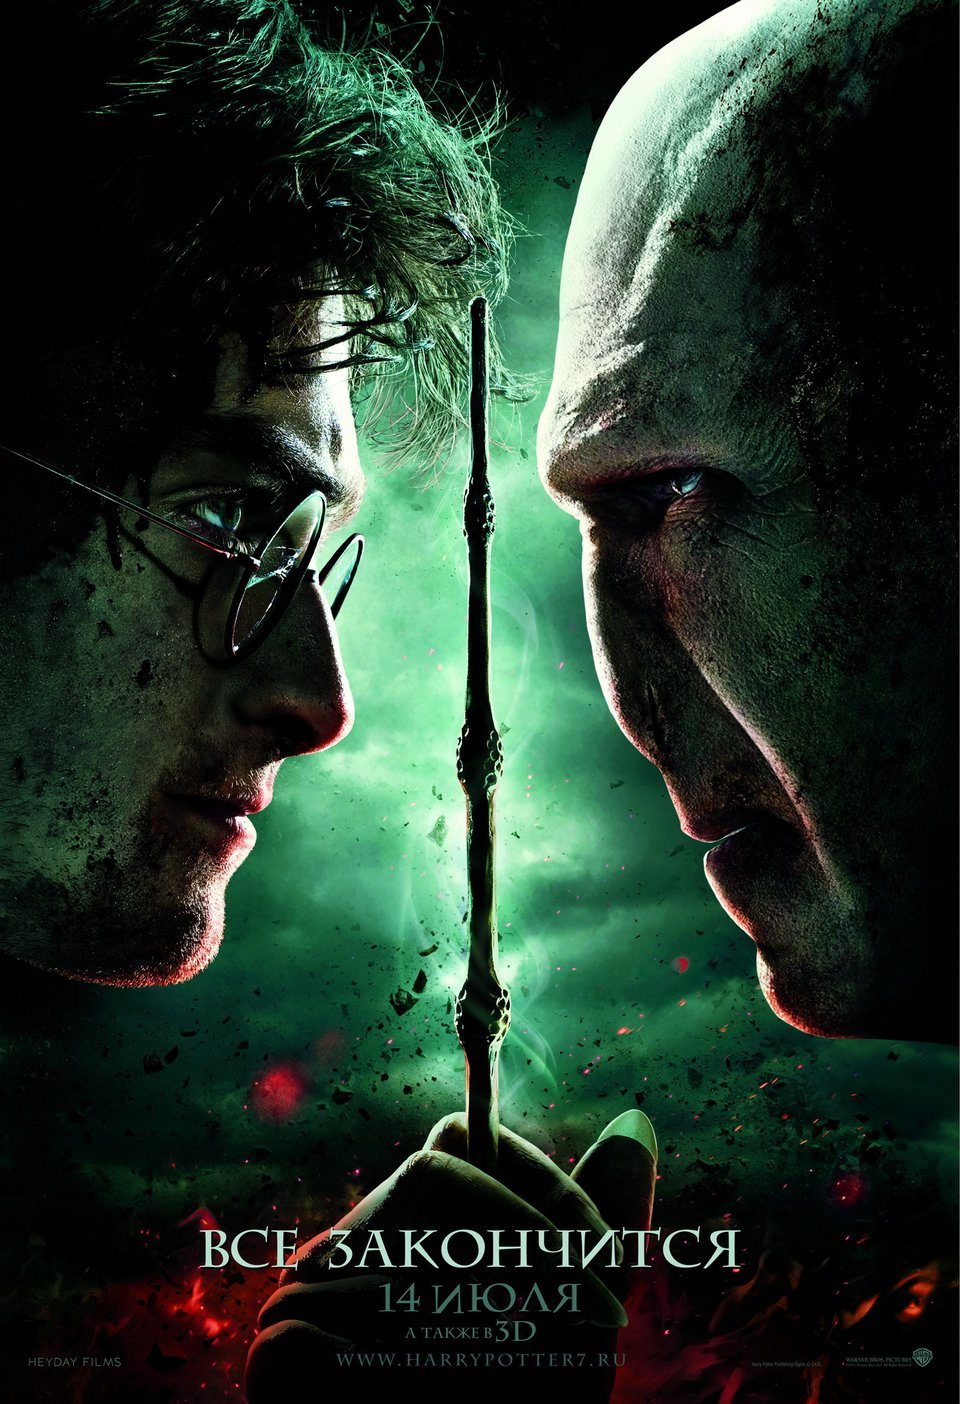 19693 download wallpaper Actors, Cinema, People, Men, Harry Potter, Daniel Radcliffe screensavers and pictures for free